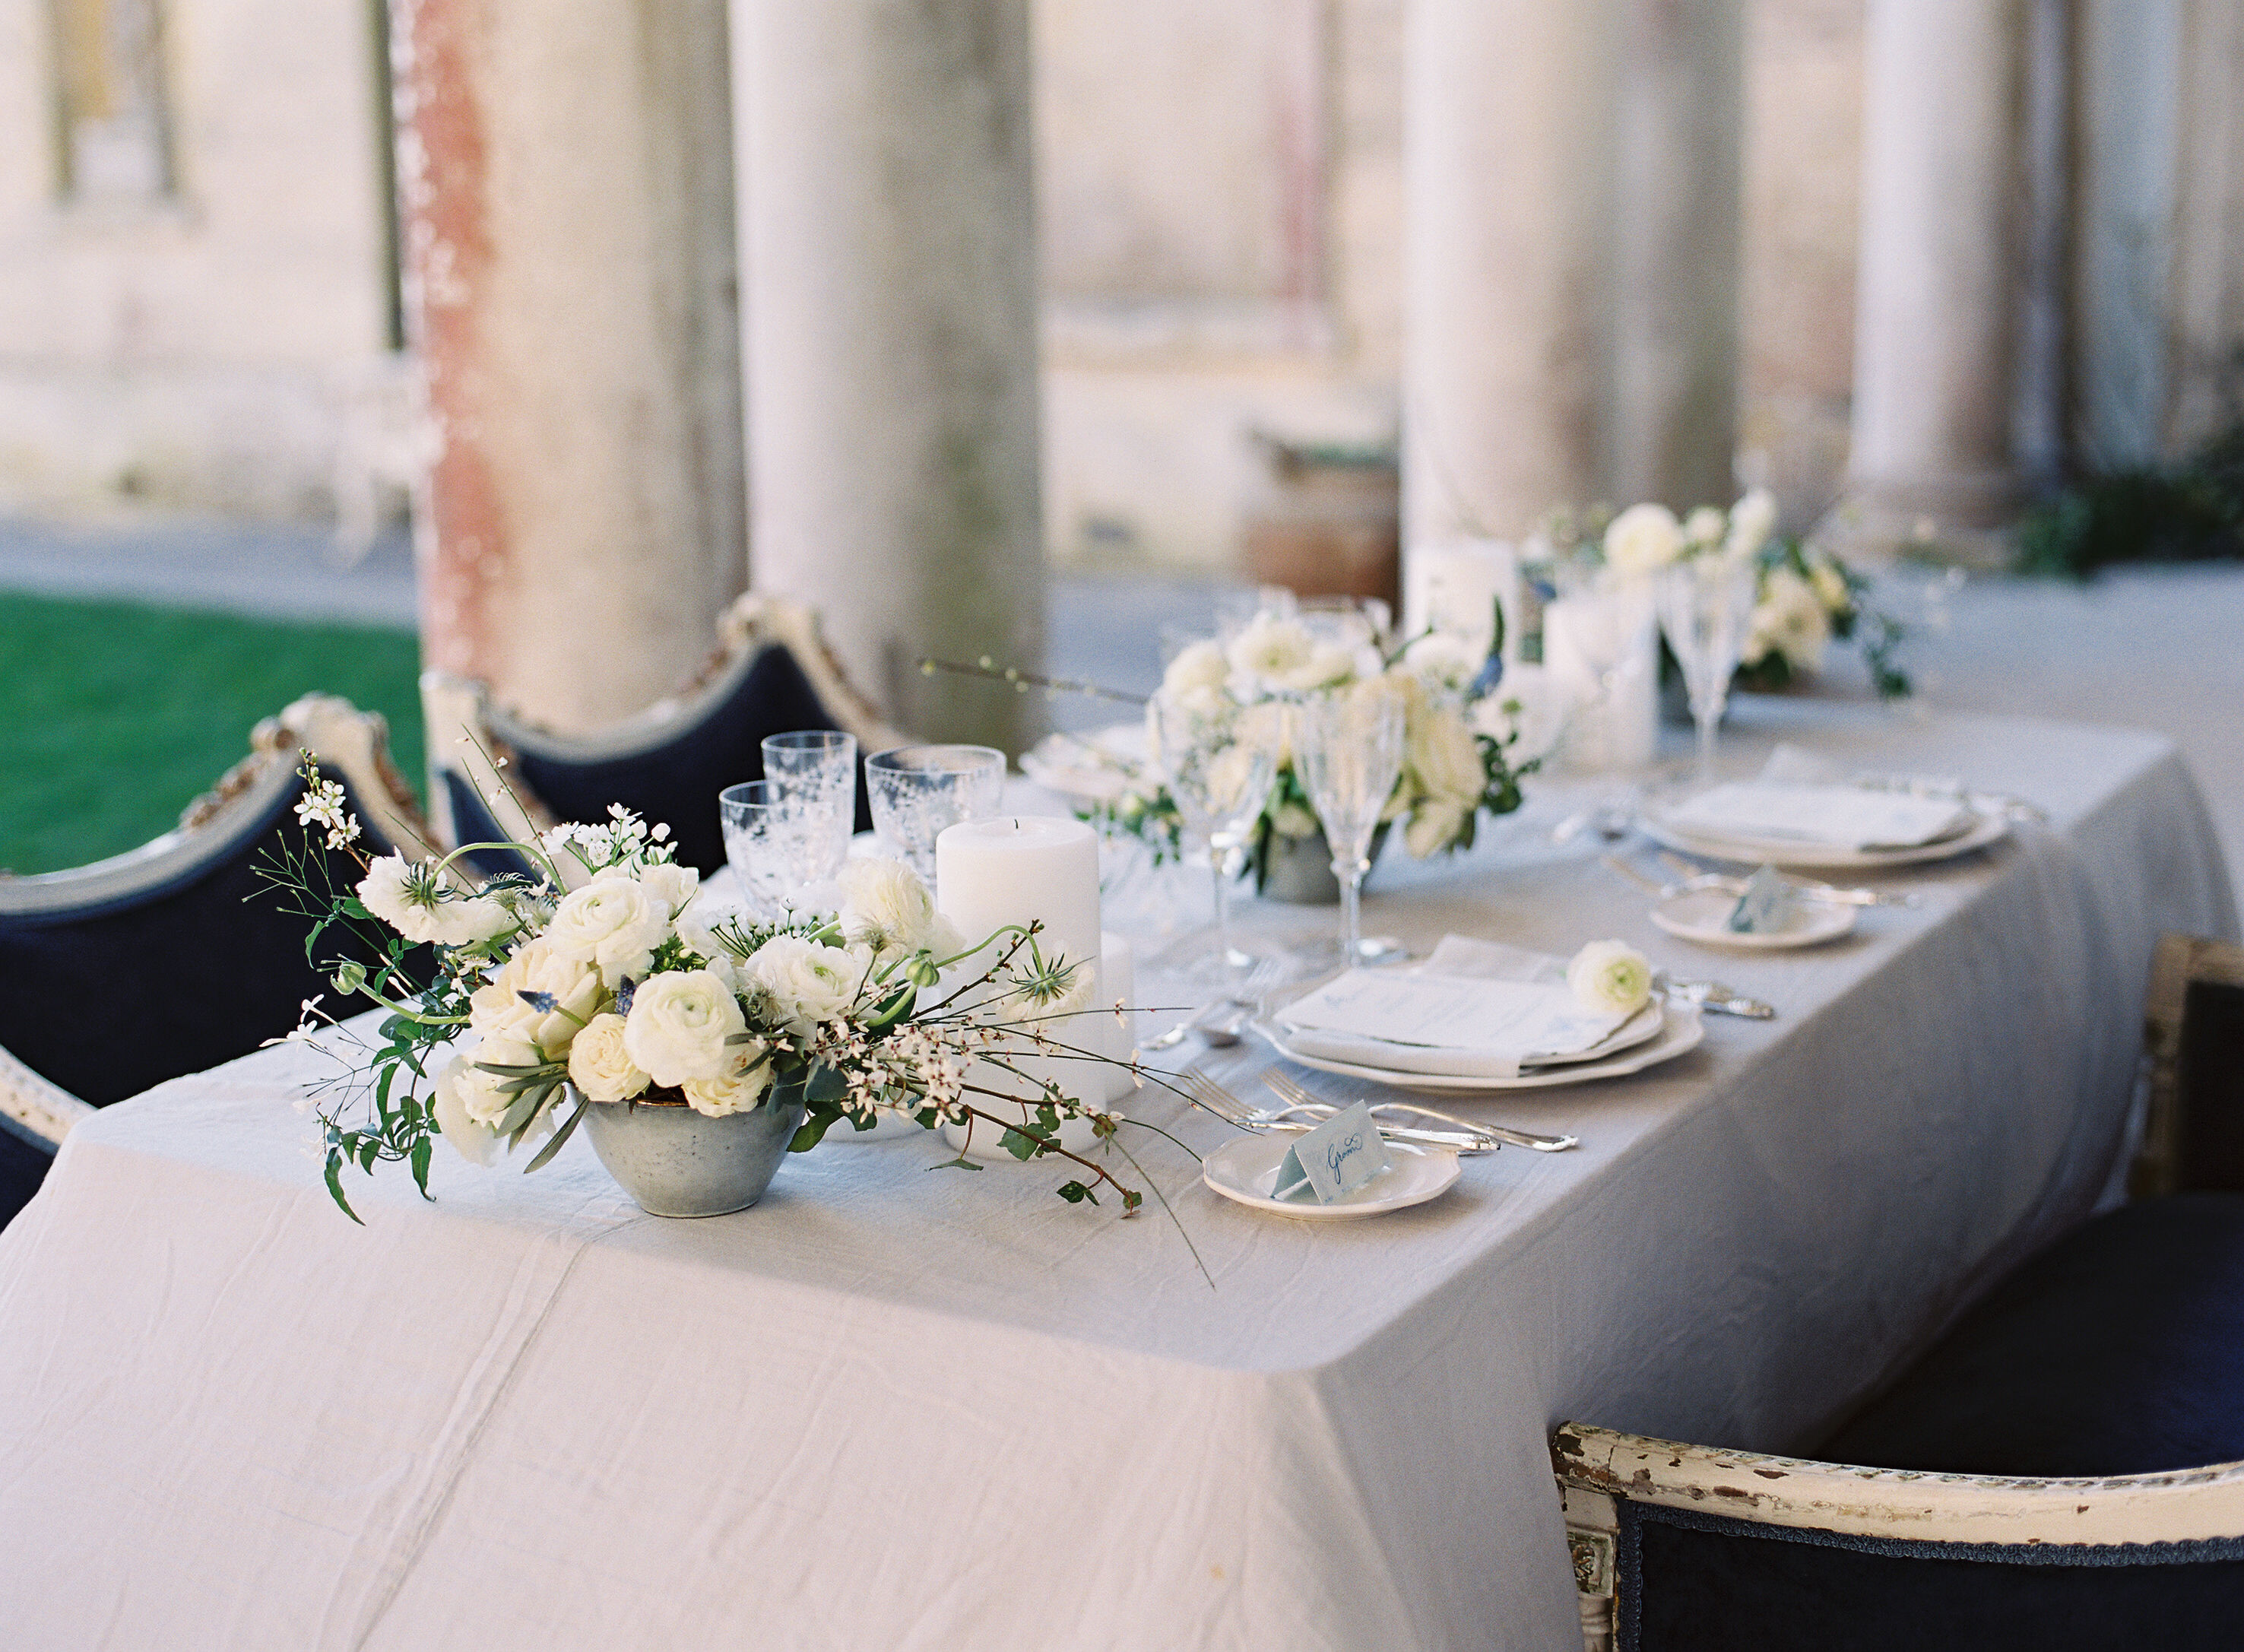 Romantic tablescape with Spring flowers for Somerley House wedding inspiration. Photo by Camilla Arnhold